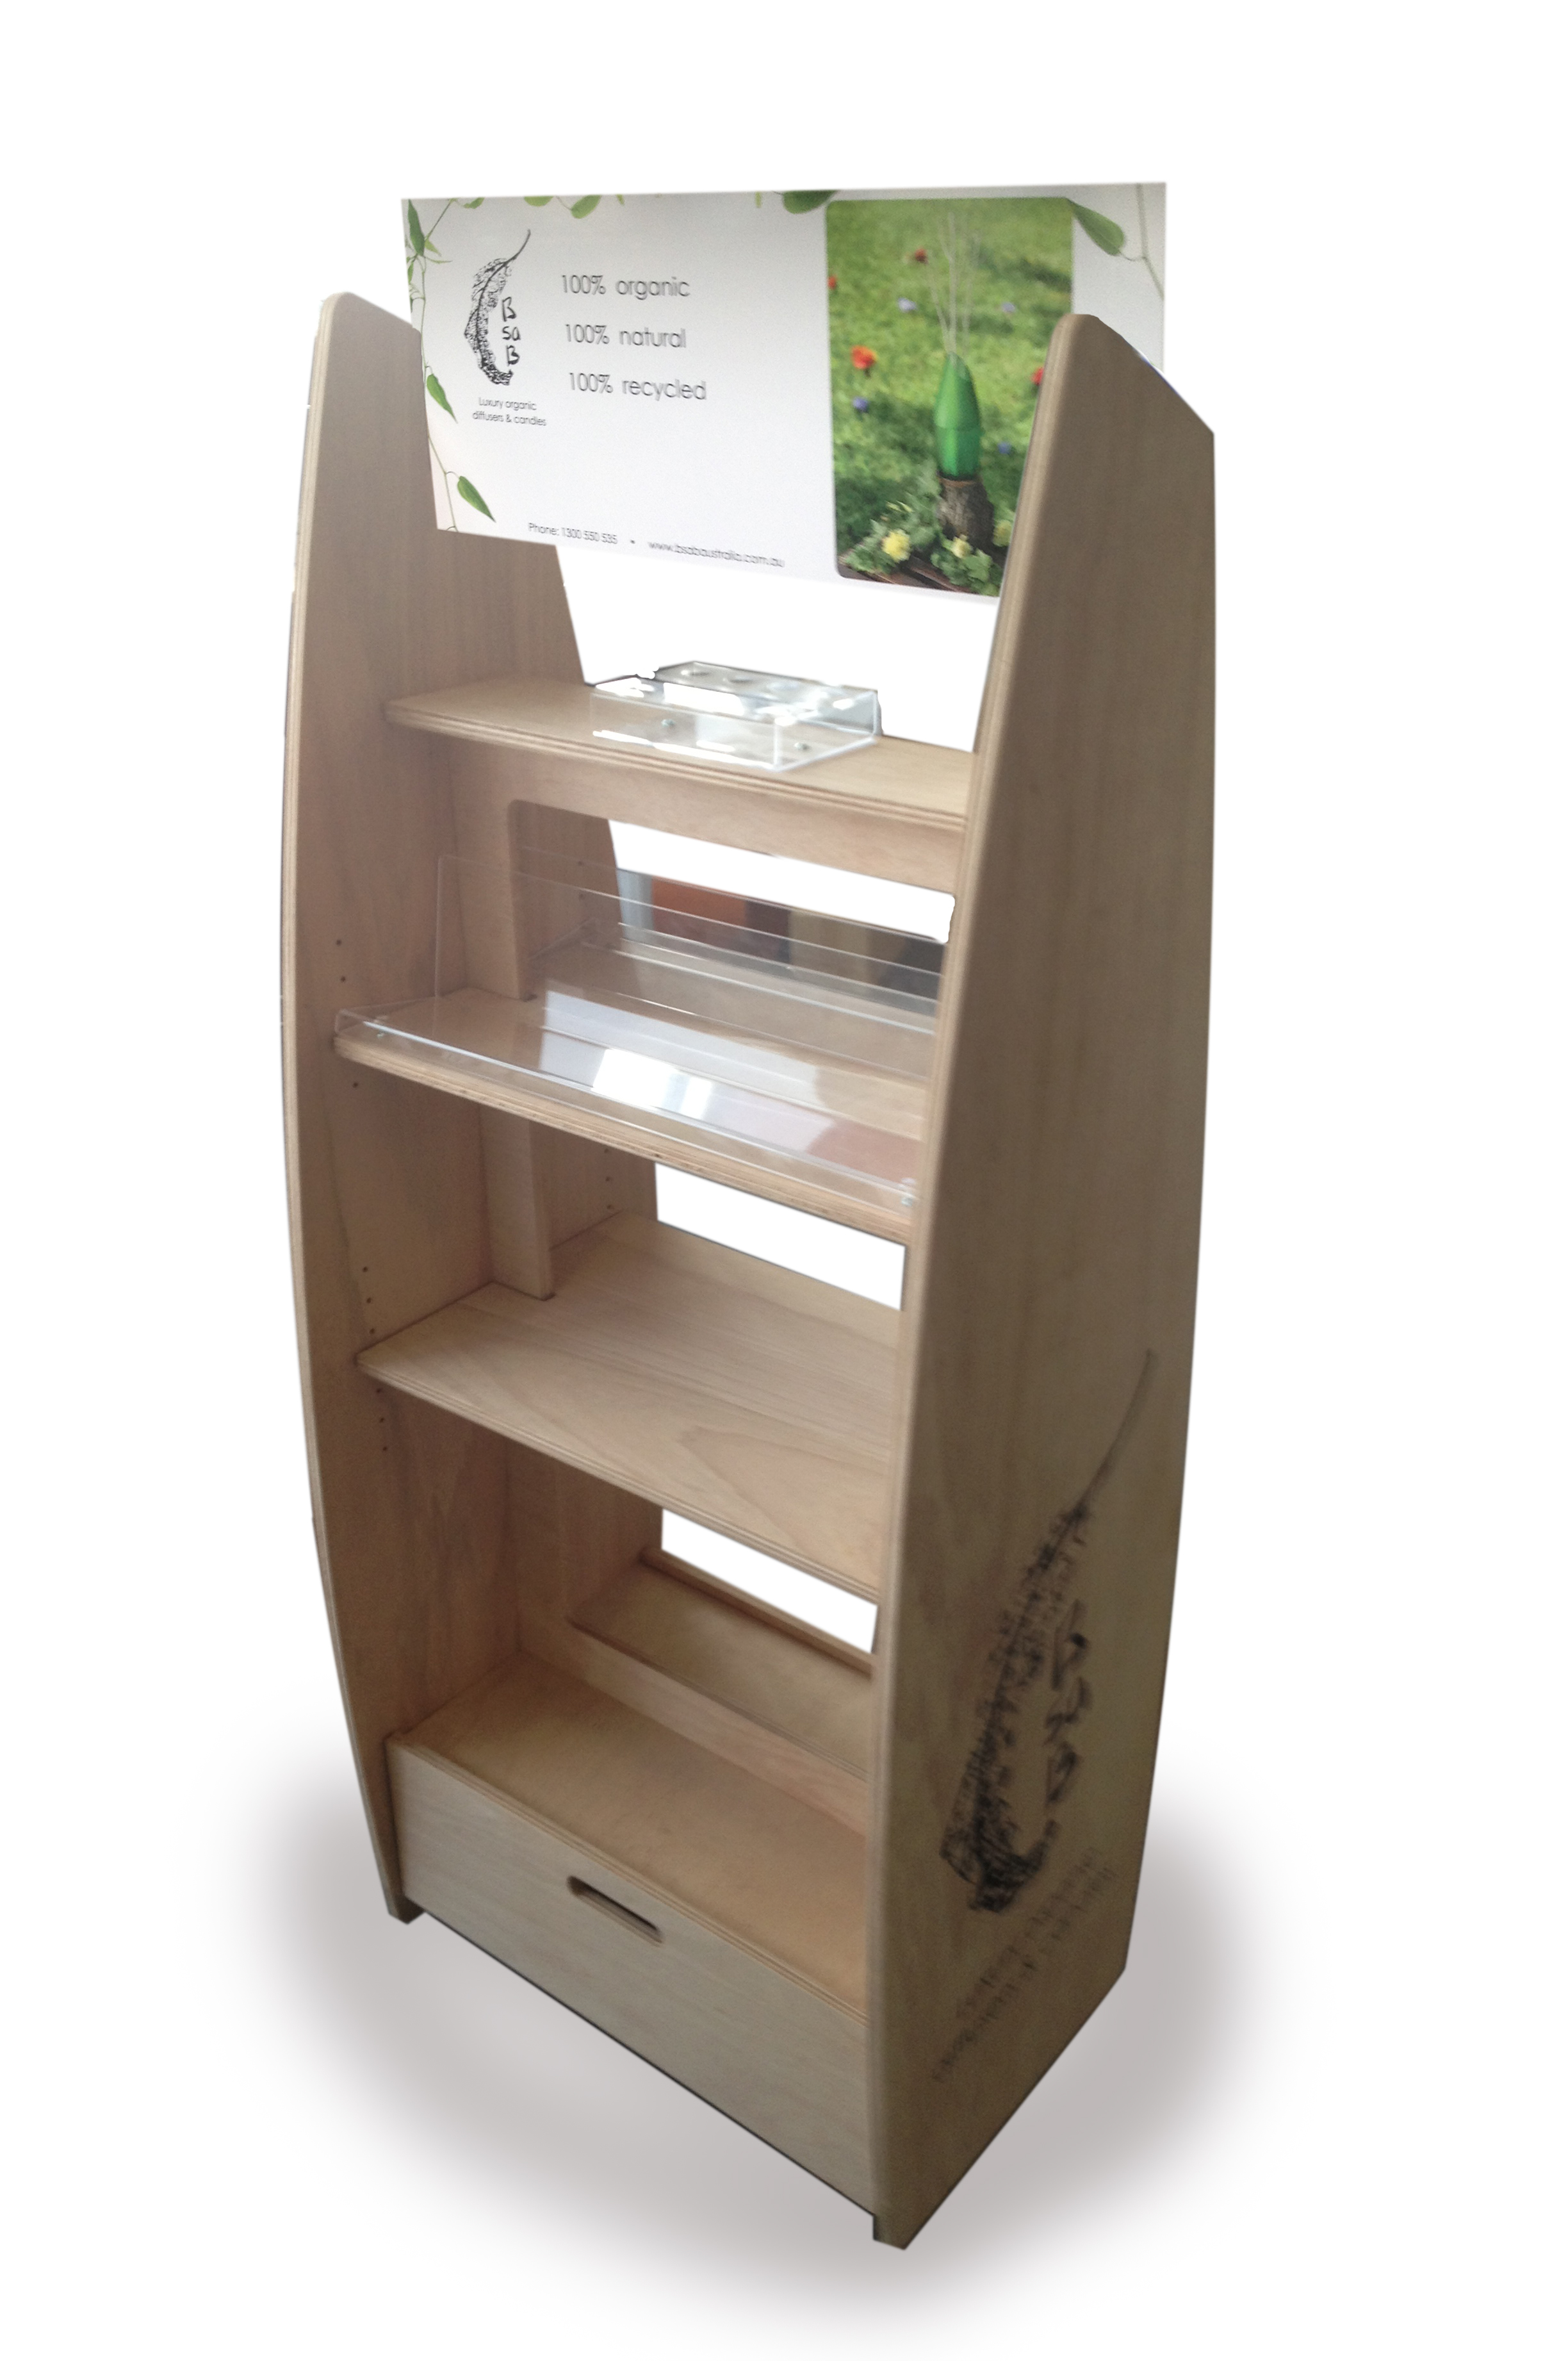 Flatpack Plywood floorstand with castors and storage underneath.Shoppable from both sides. Logo screenprinted directly on the sides. Interchangeable header card locates in slots.